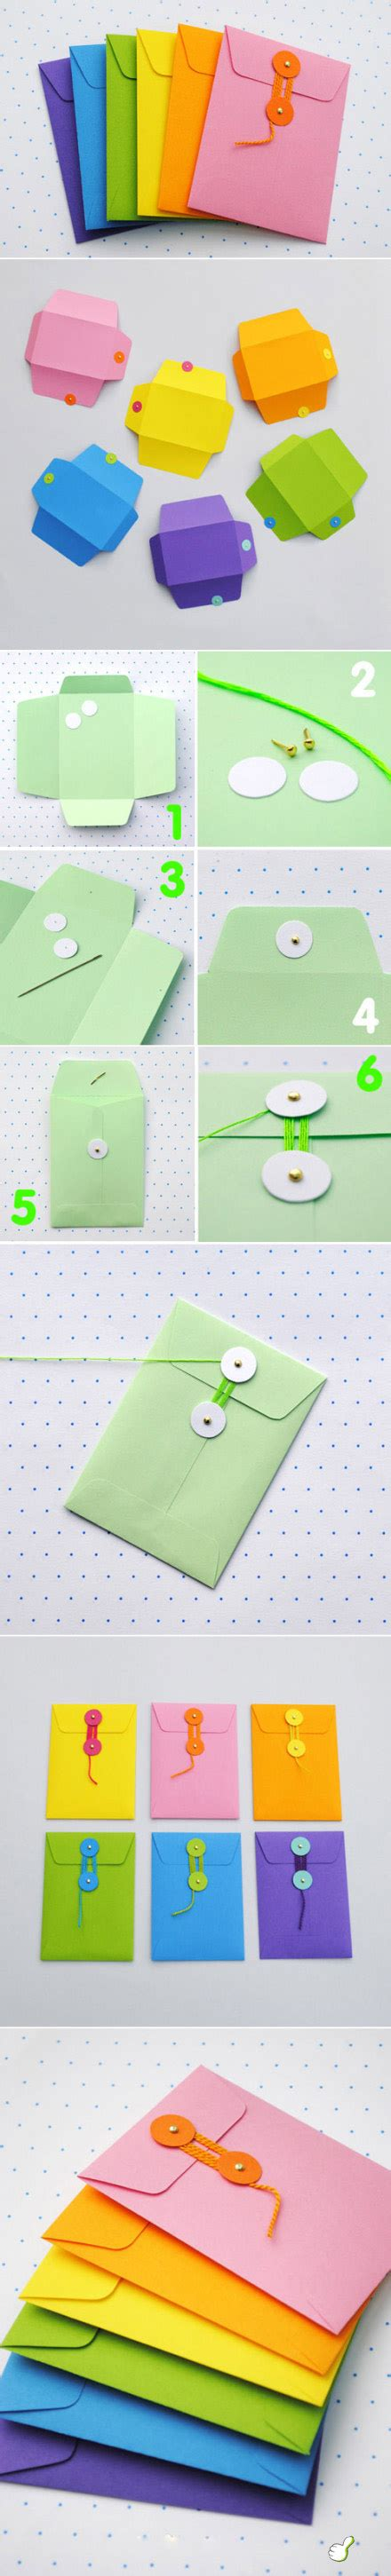 Mini Origami Envelope - diy envelopes pictures photos and images for